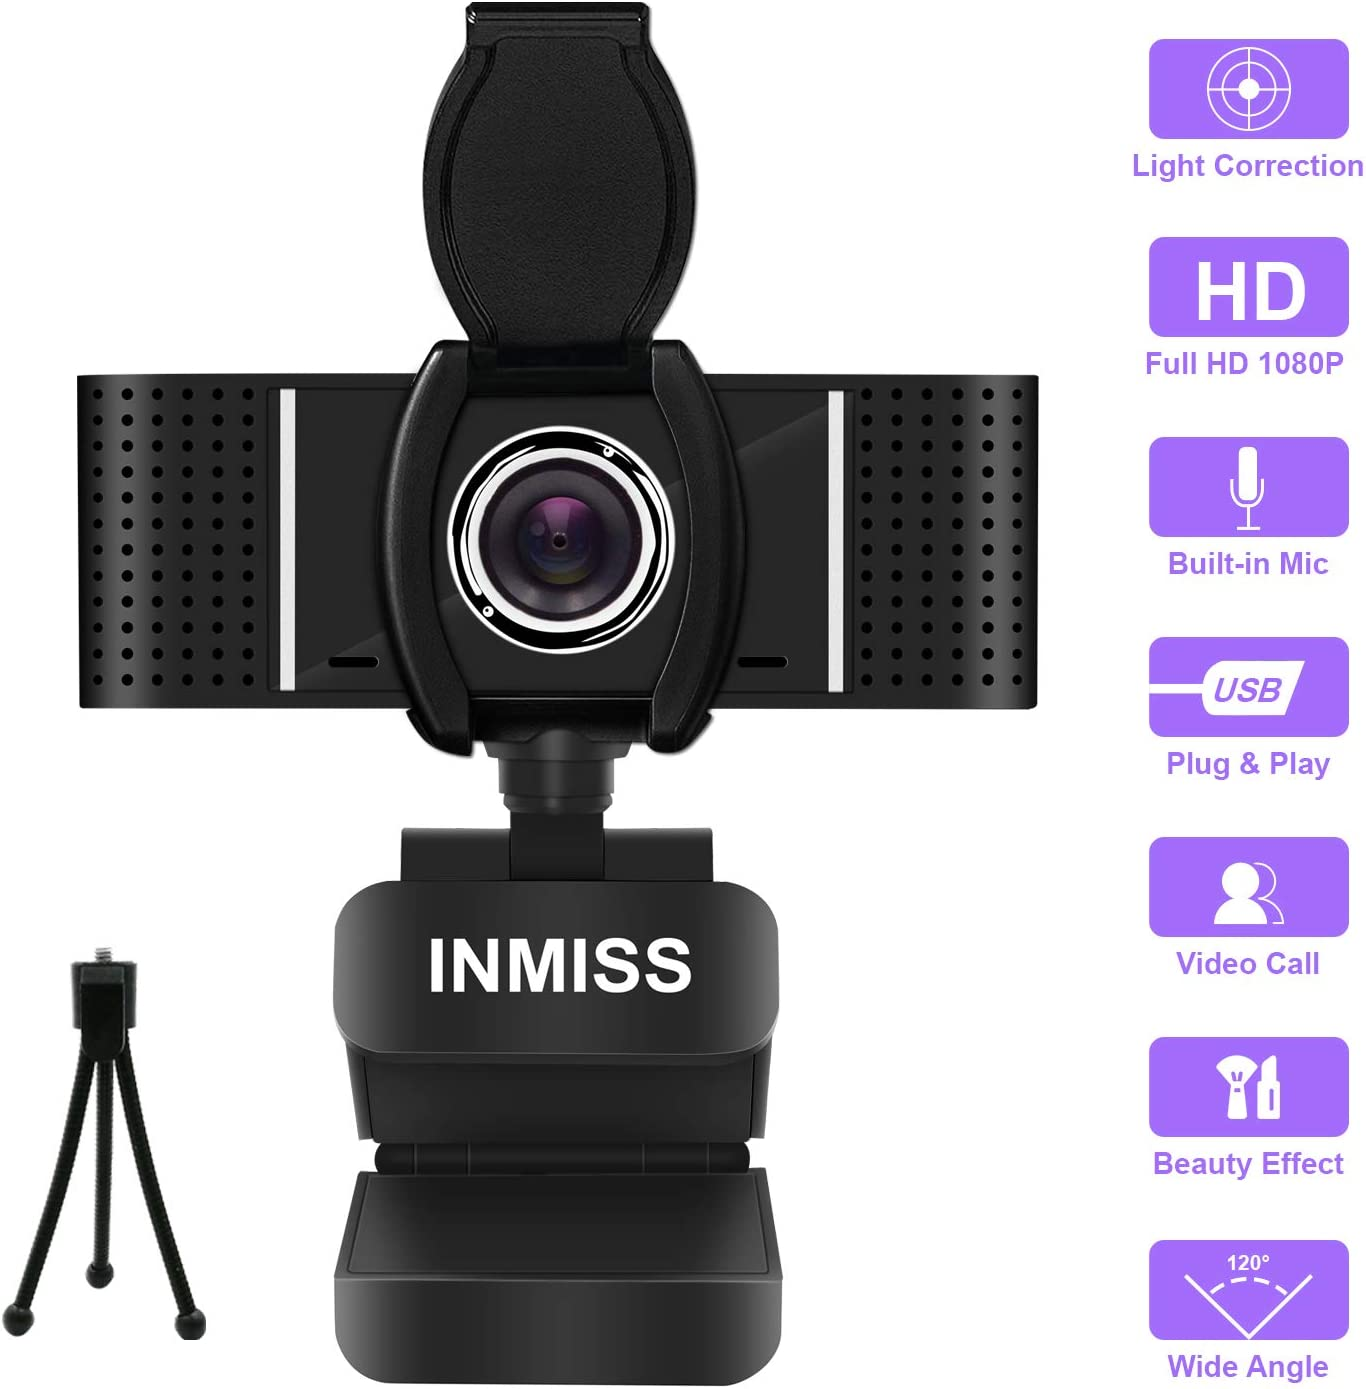 Full HD Webcam 1080P with Microphone Free Tripod Cover Slide - 120° Wide Angle Webcams Streaming USB Web Camera - Pro Computer Camera for Video Calling, Recording, Conferencing, Skype, OBS, PC Laptop